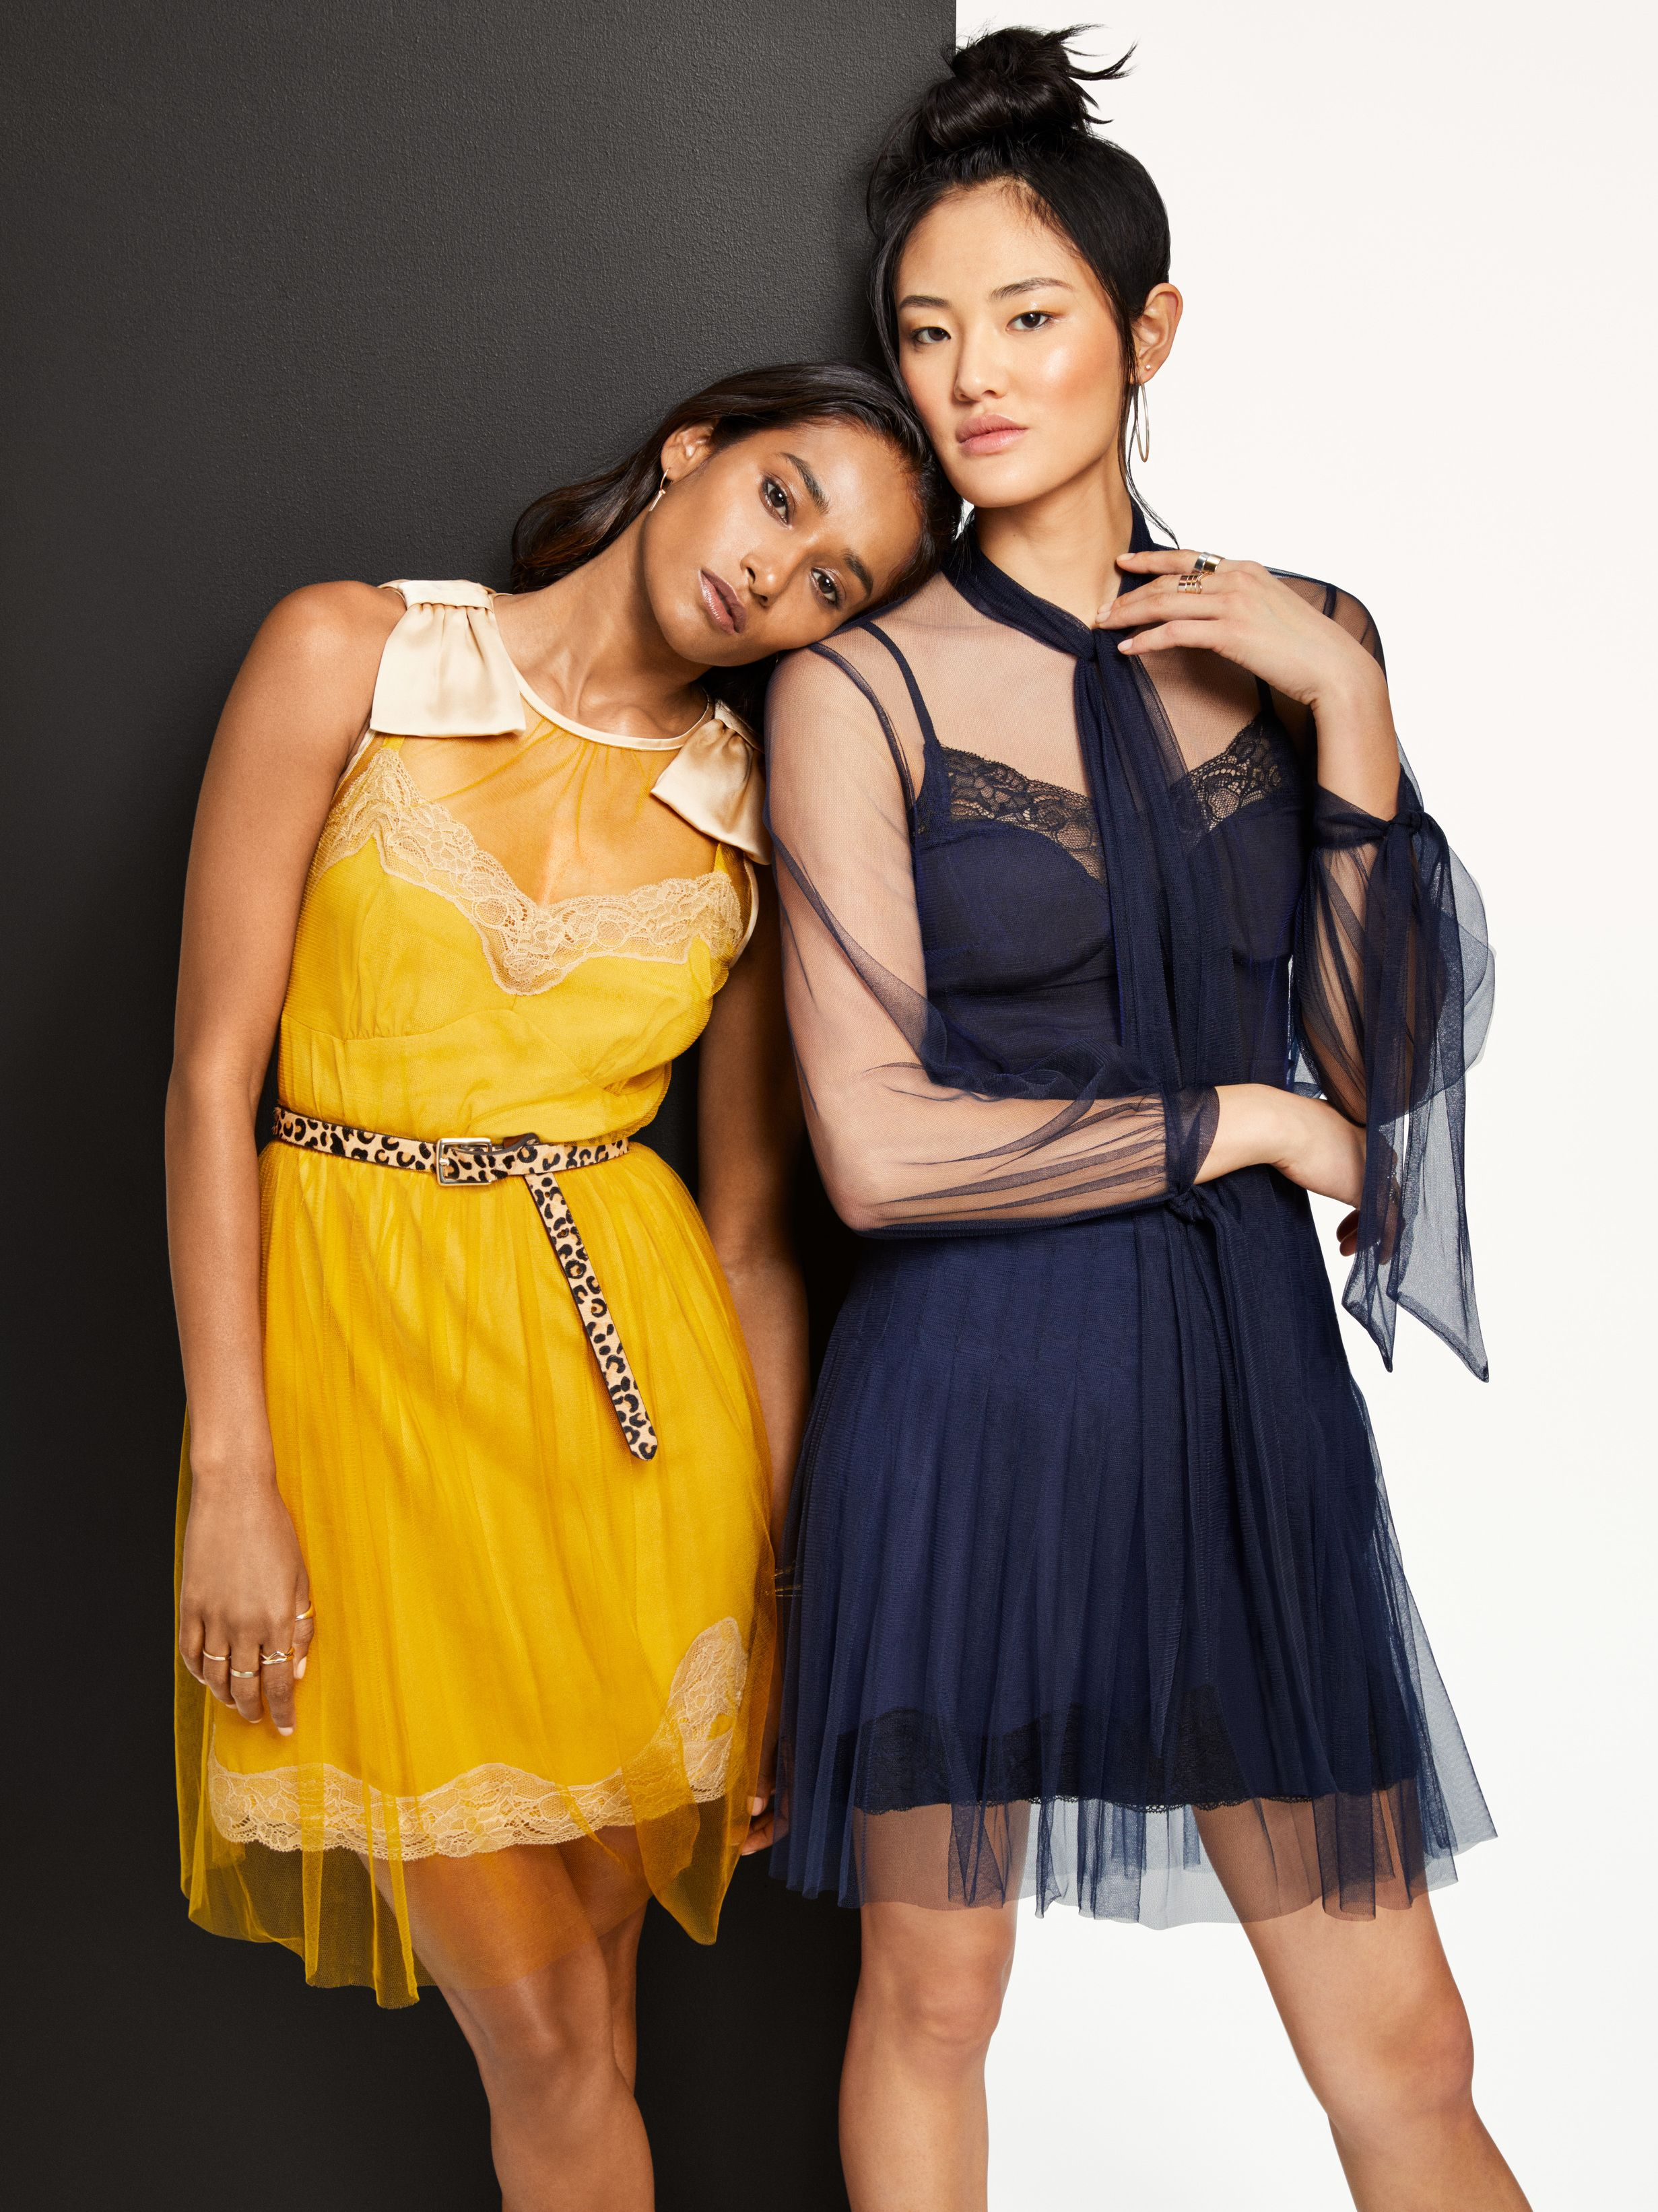 See Every Designer Look From Target's 20th Anniversary Collection